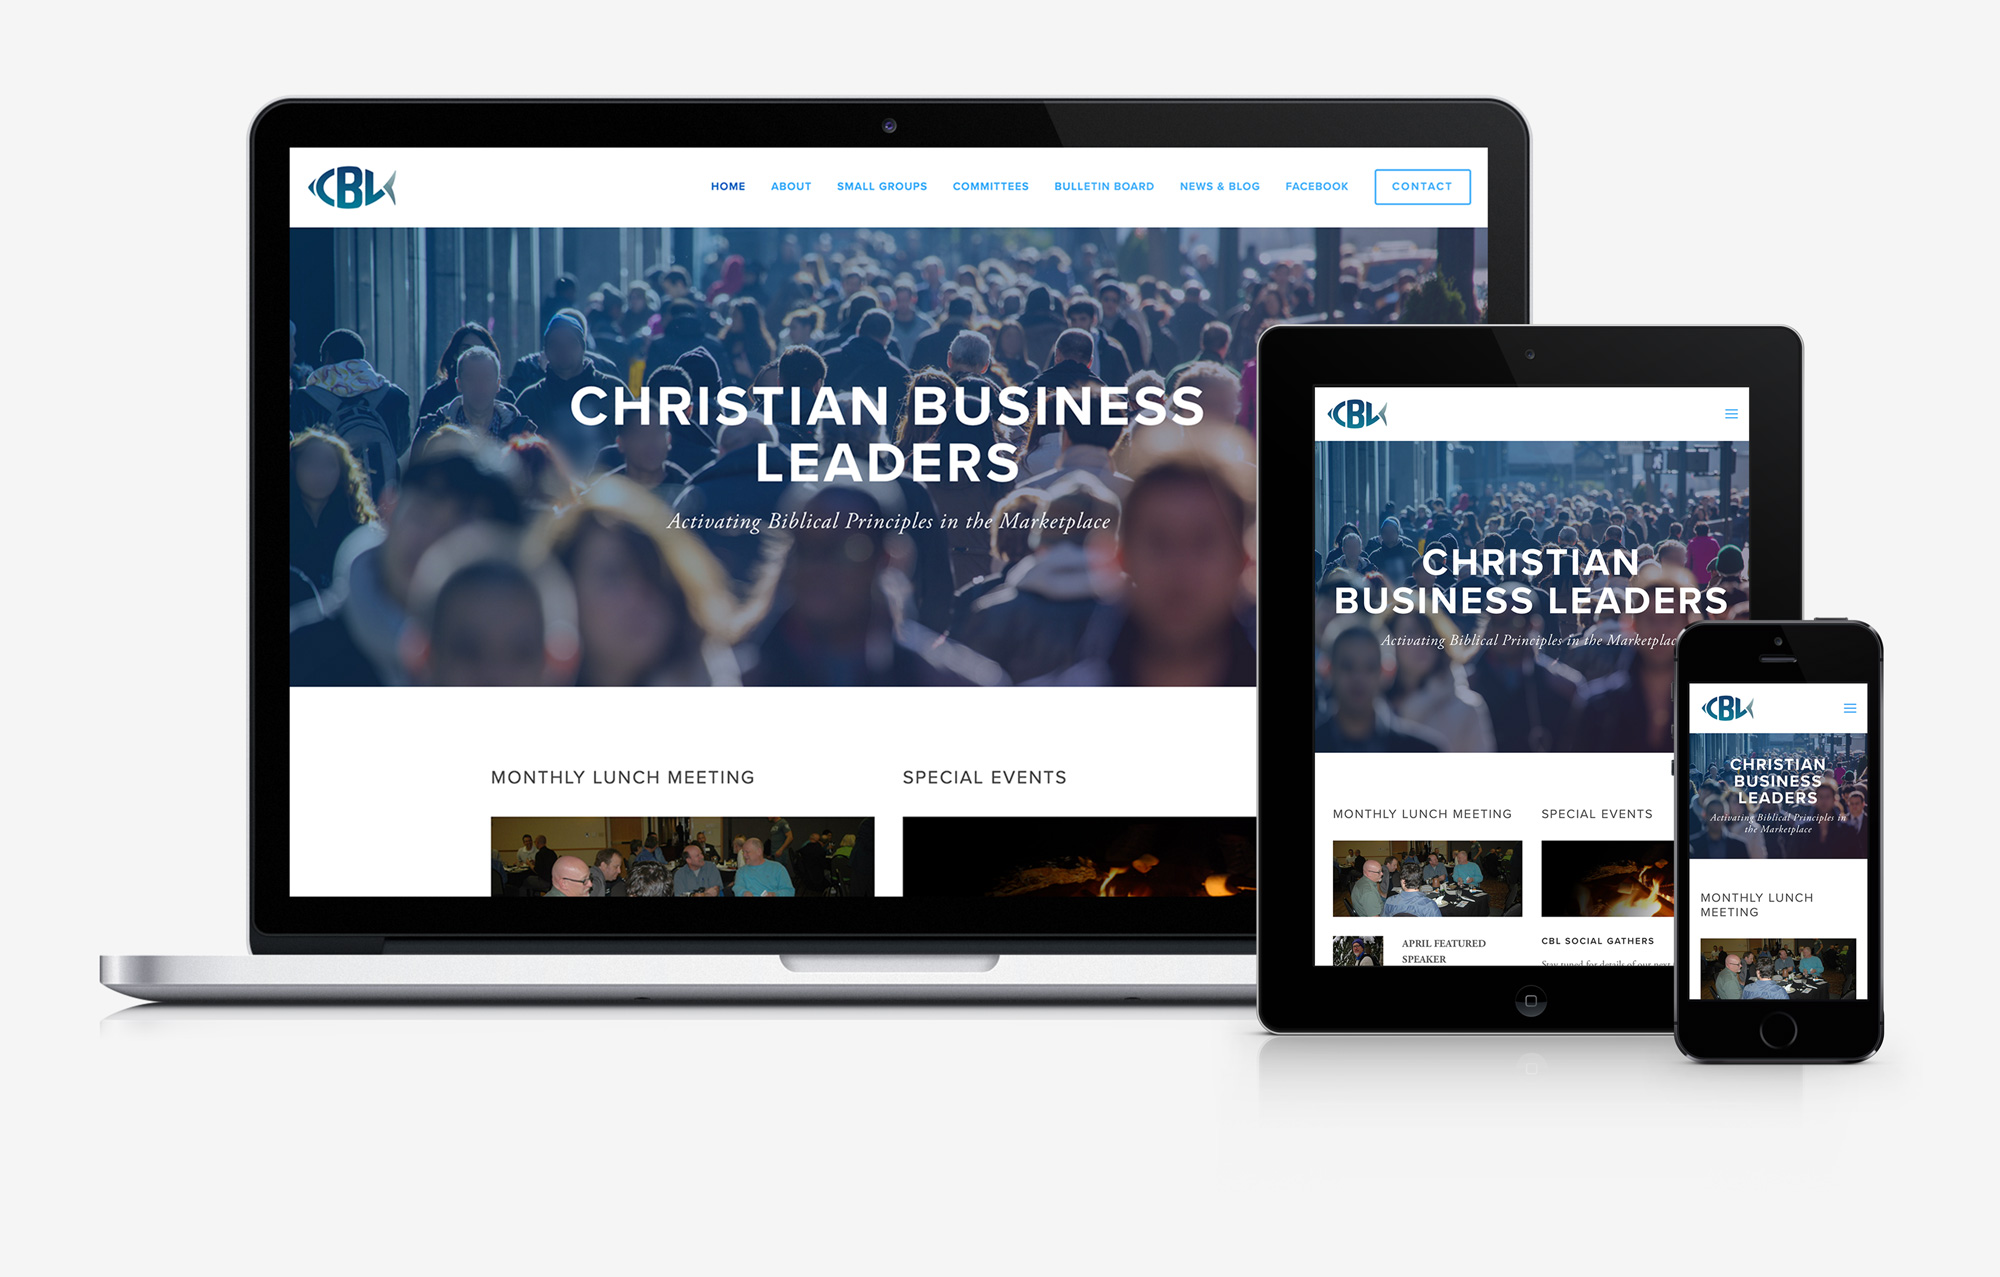 Christian Business Leaders responsive website design mockup